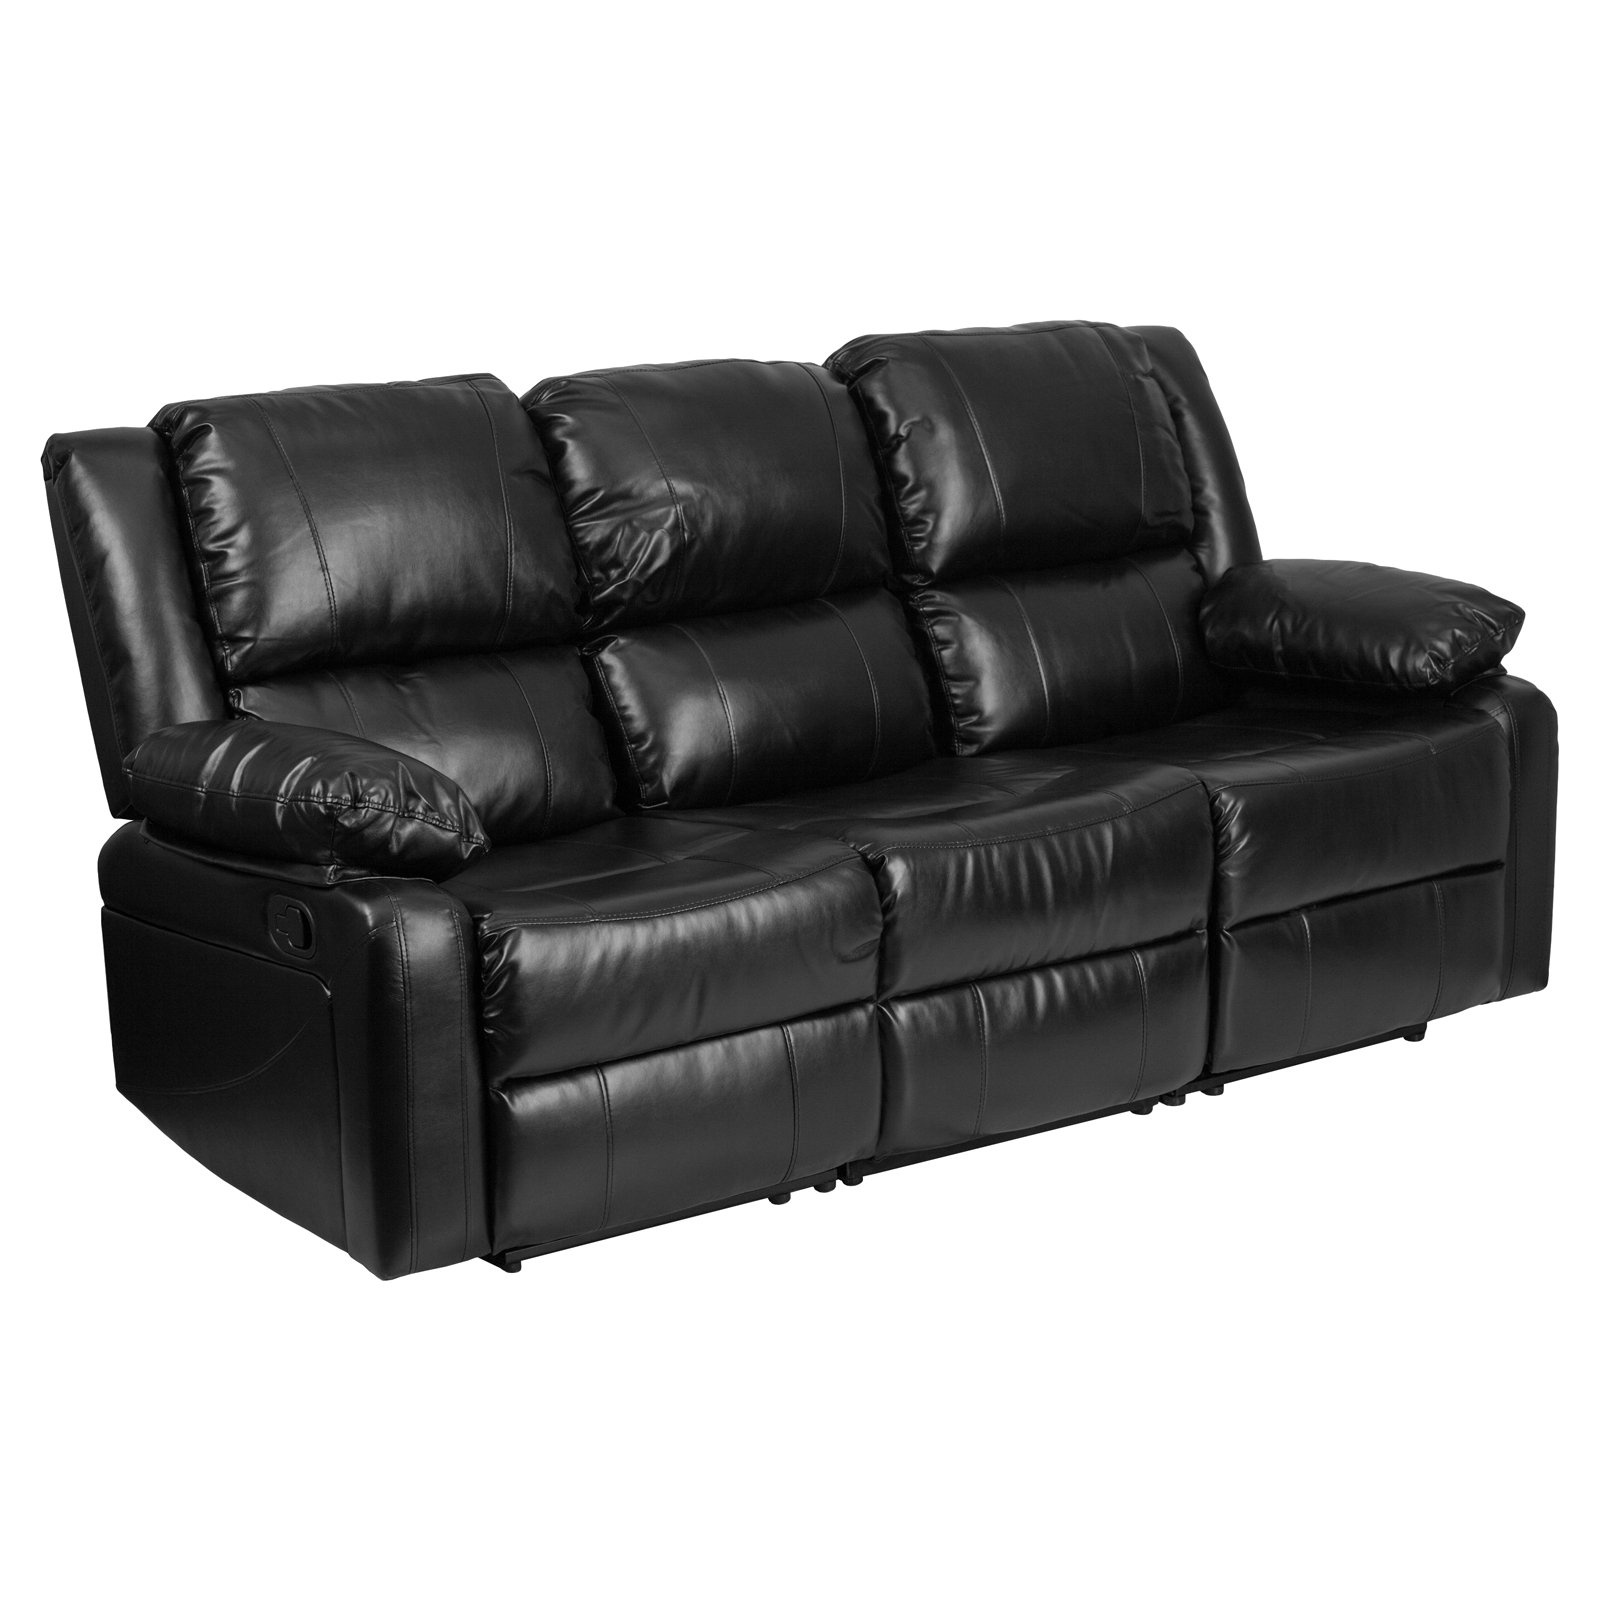 Genial Flash Furniture Harmony Series Black Leather Sofa With Two Built In  Recliners